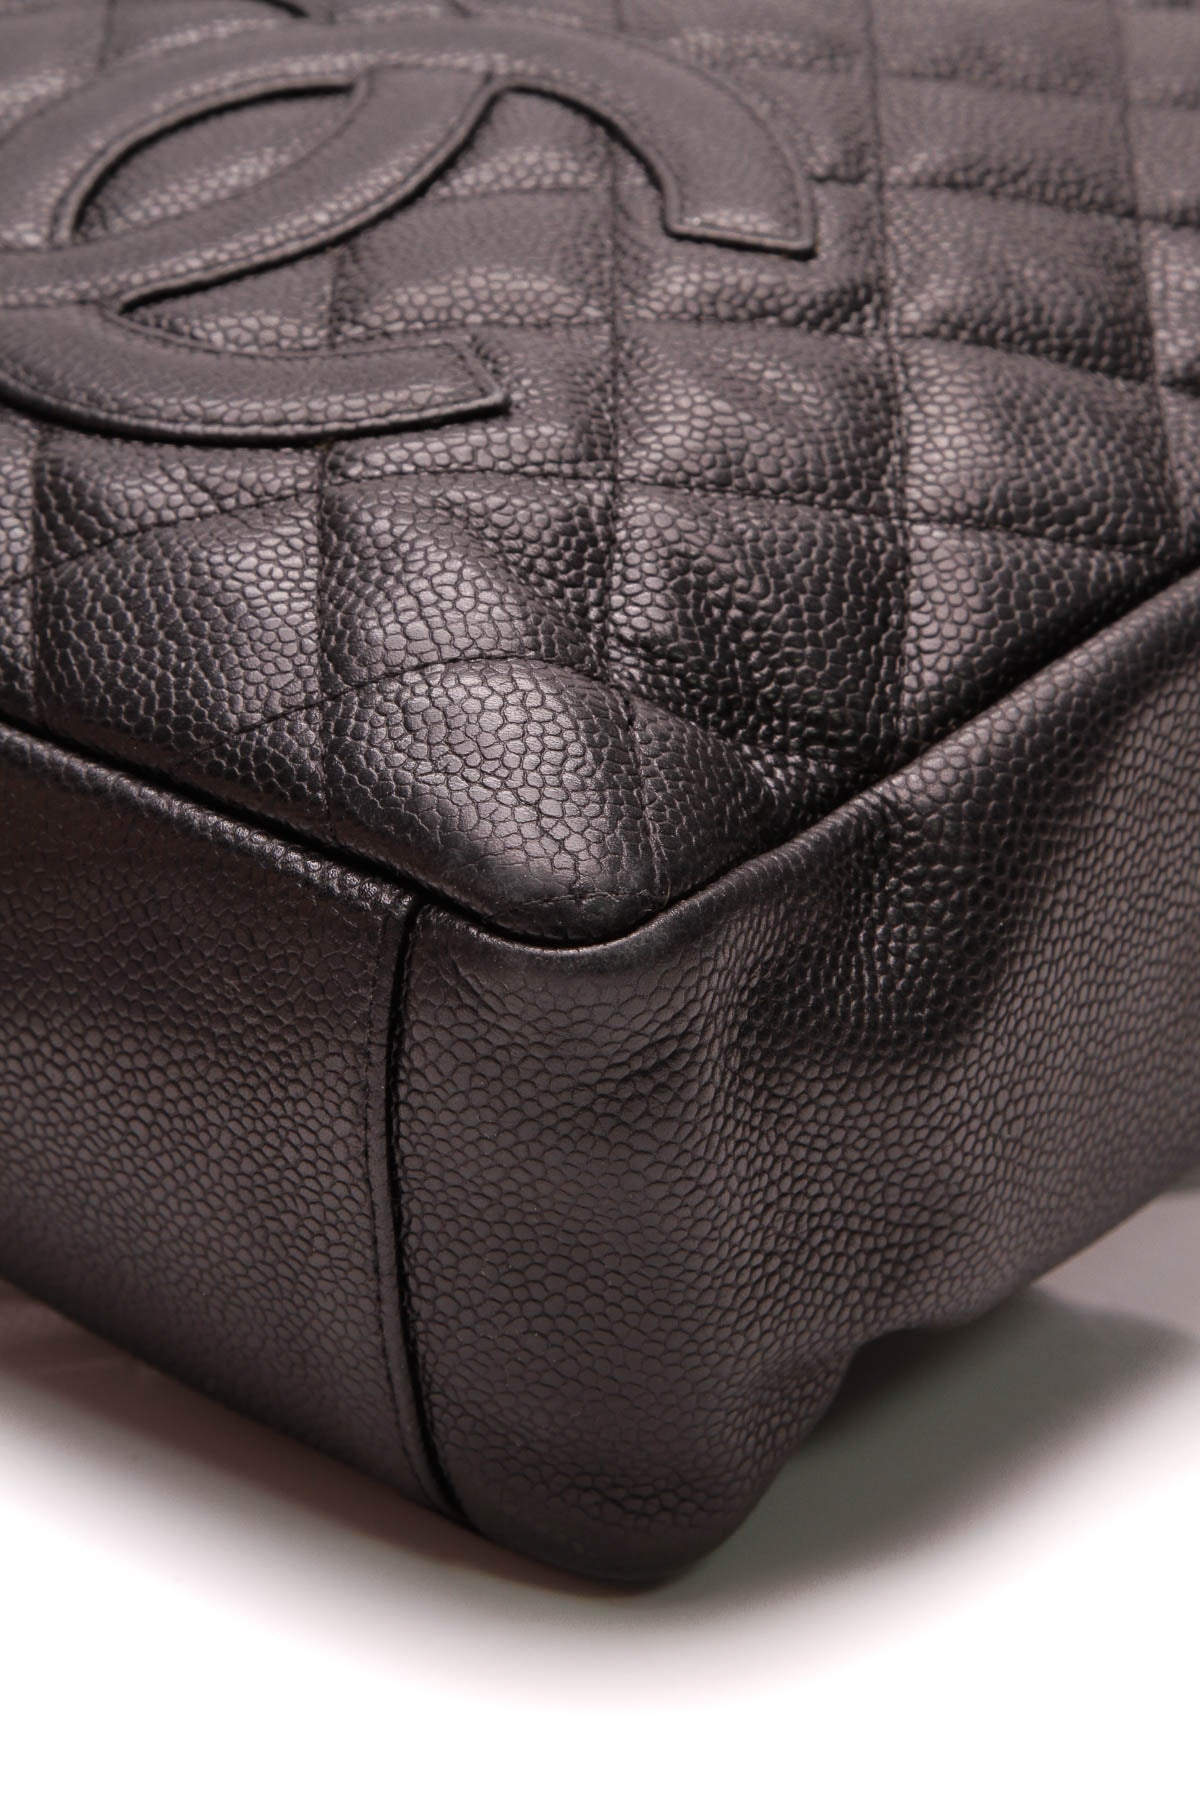 49539f58158e Chanel PST Petite Shopping Tote Bag - Black – Couture USA